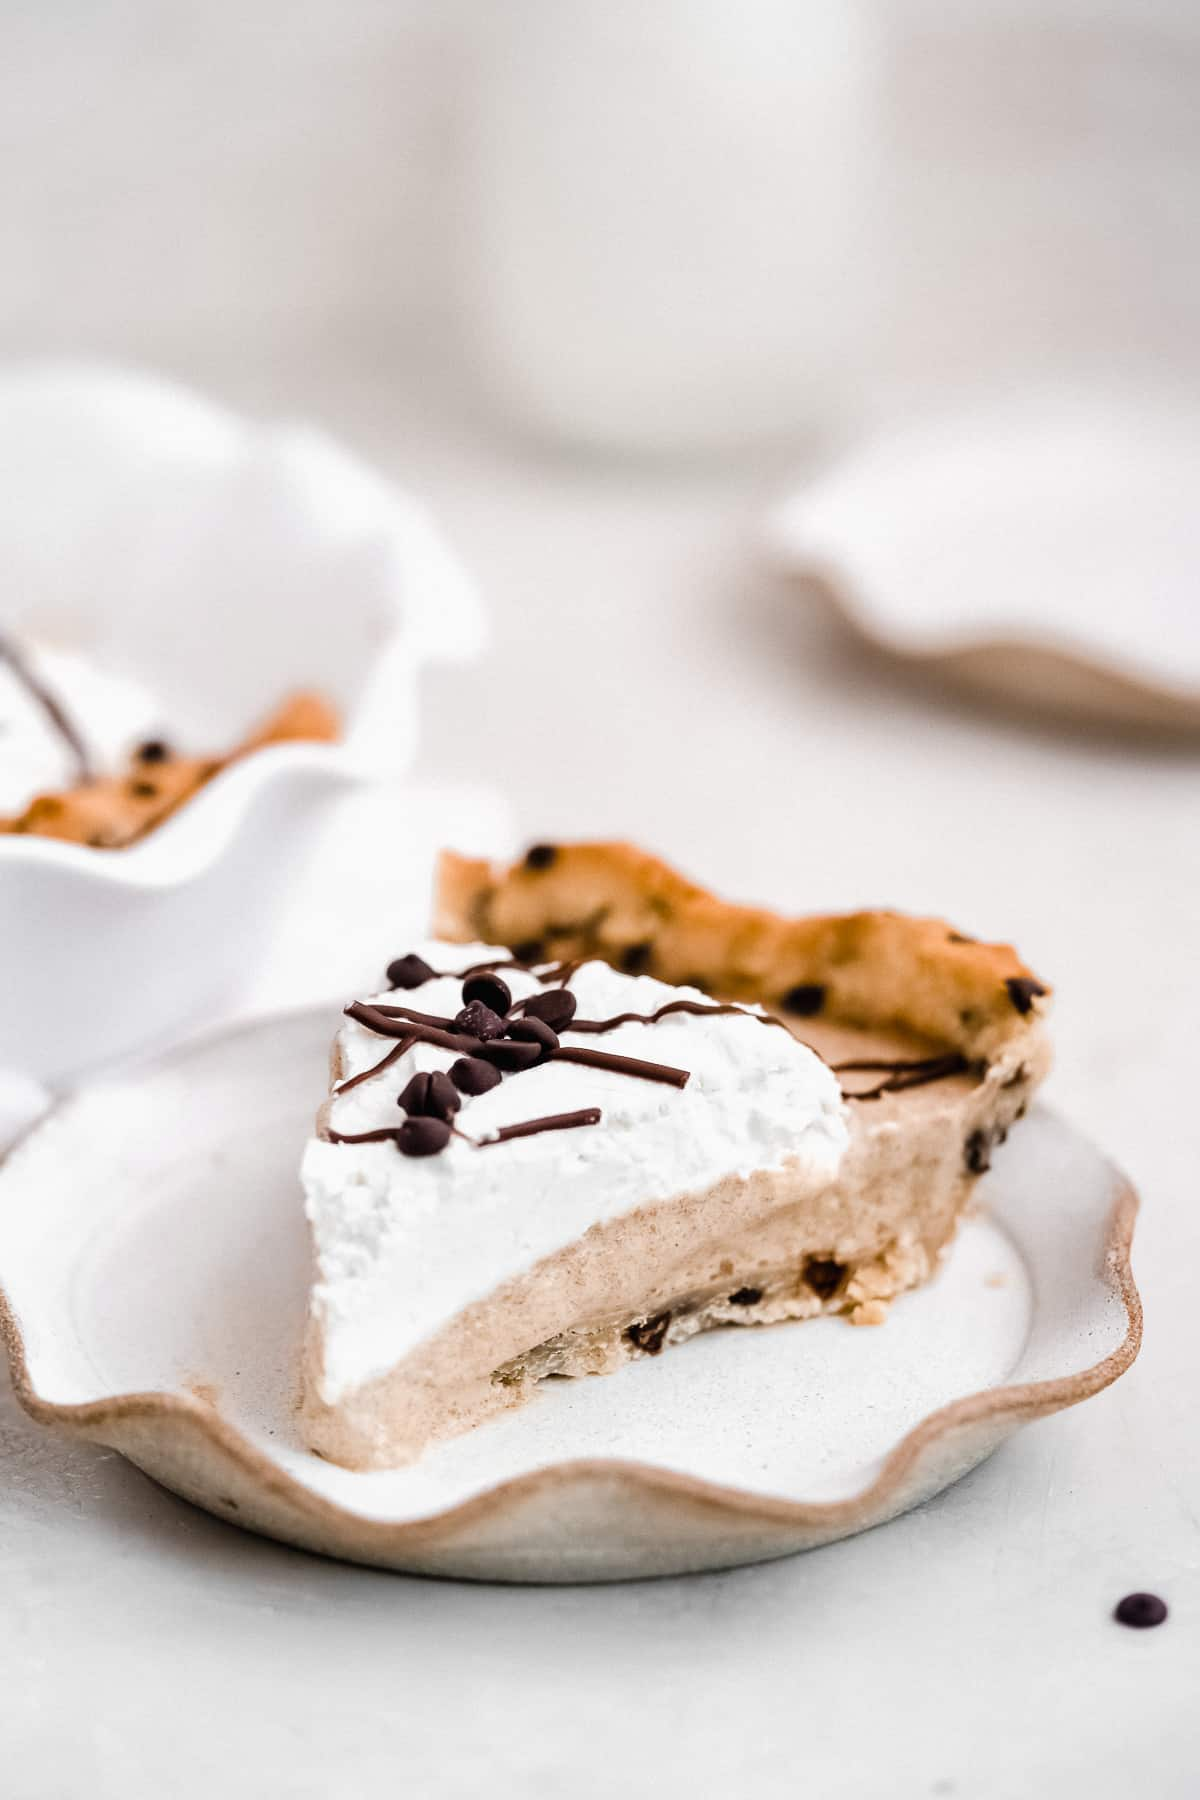 Close up photo of a slice of Peanut Butter Cookie Dough Cream pie on a small scalloped plate.